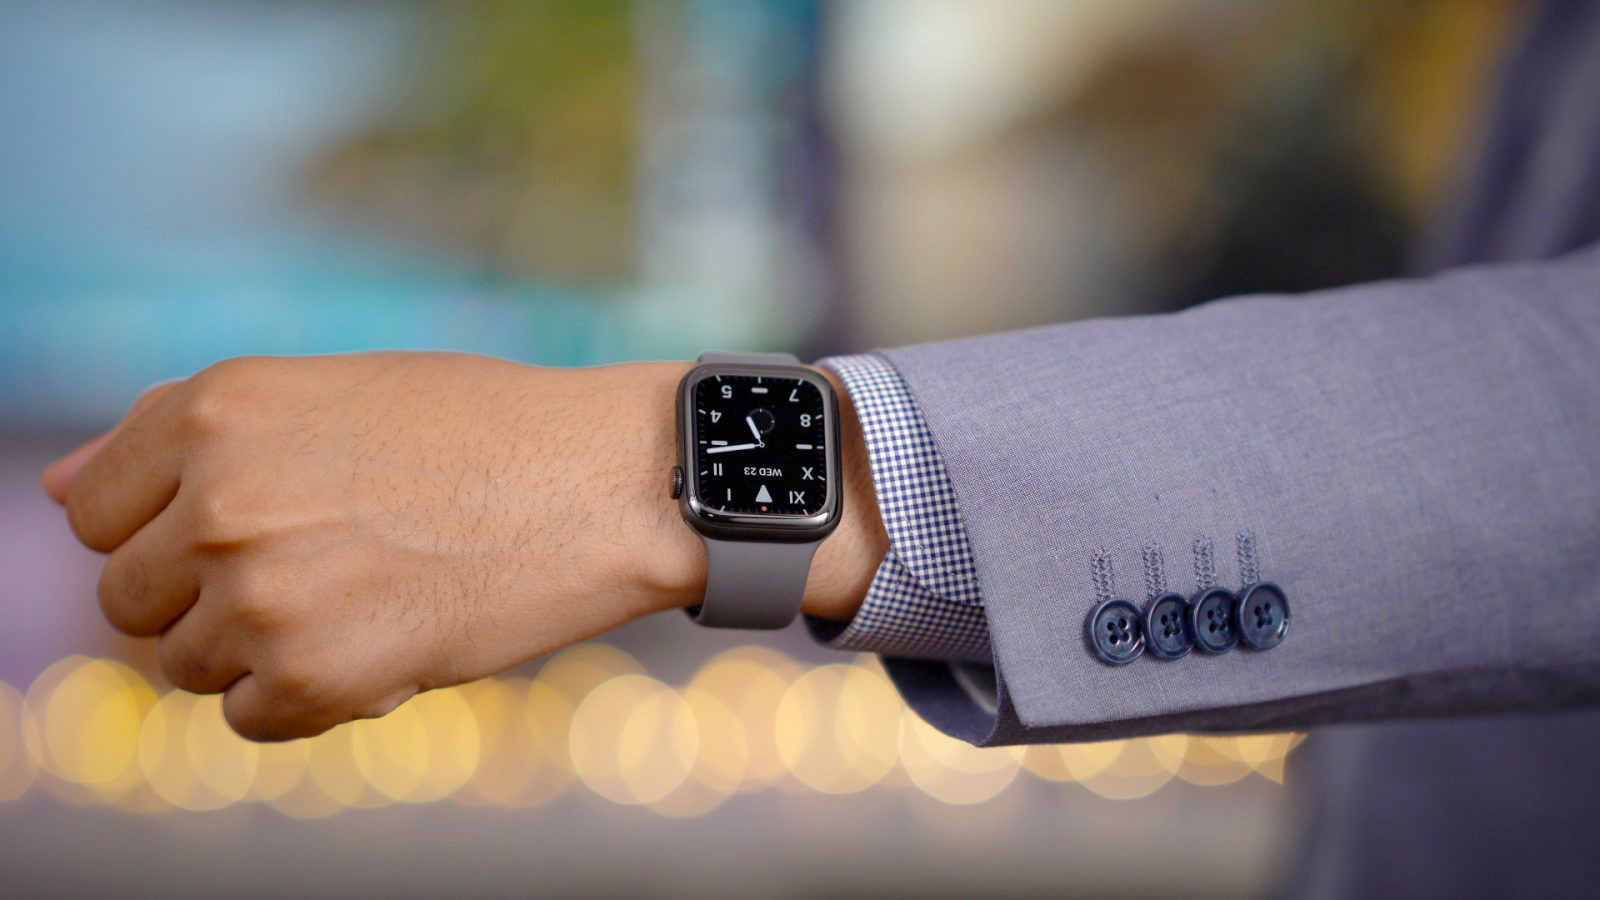 wearing smartwatch with suit